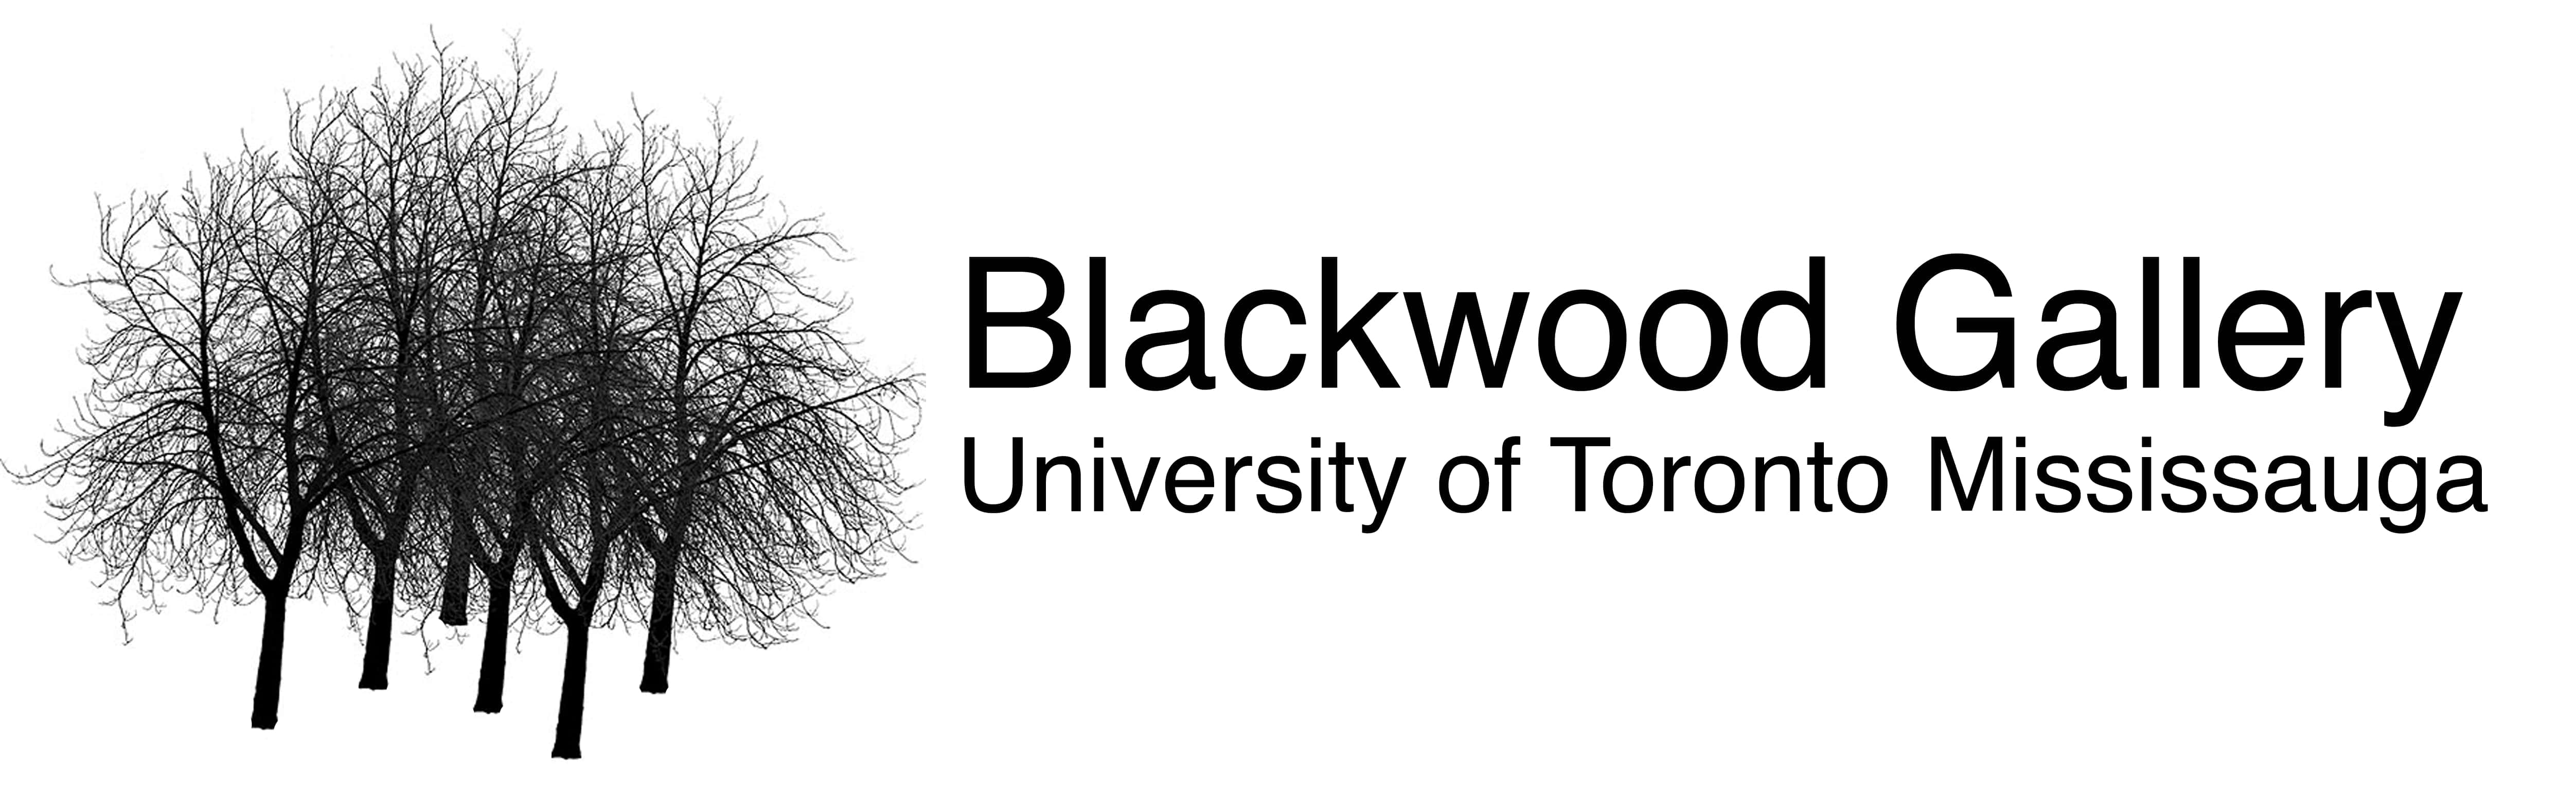 Blackwood Gallery Logo